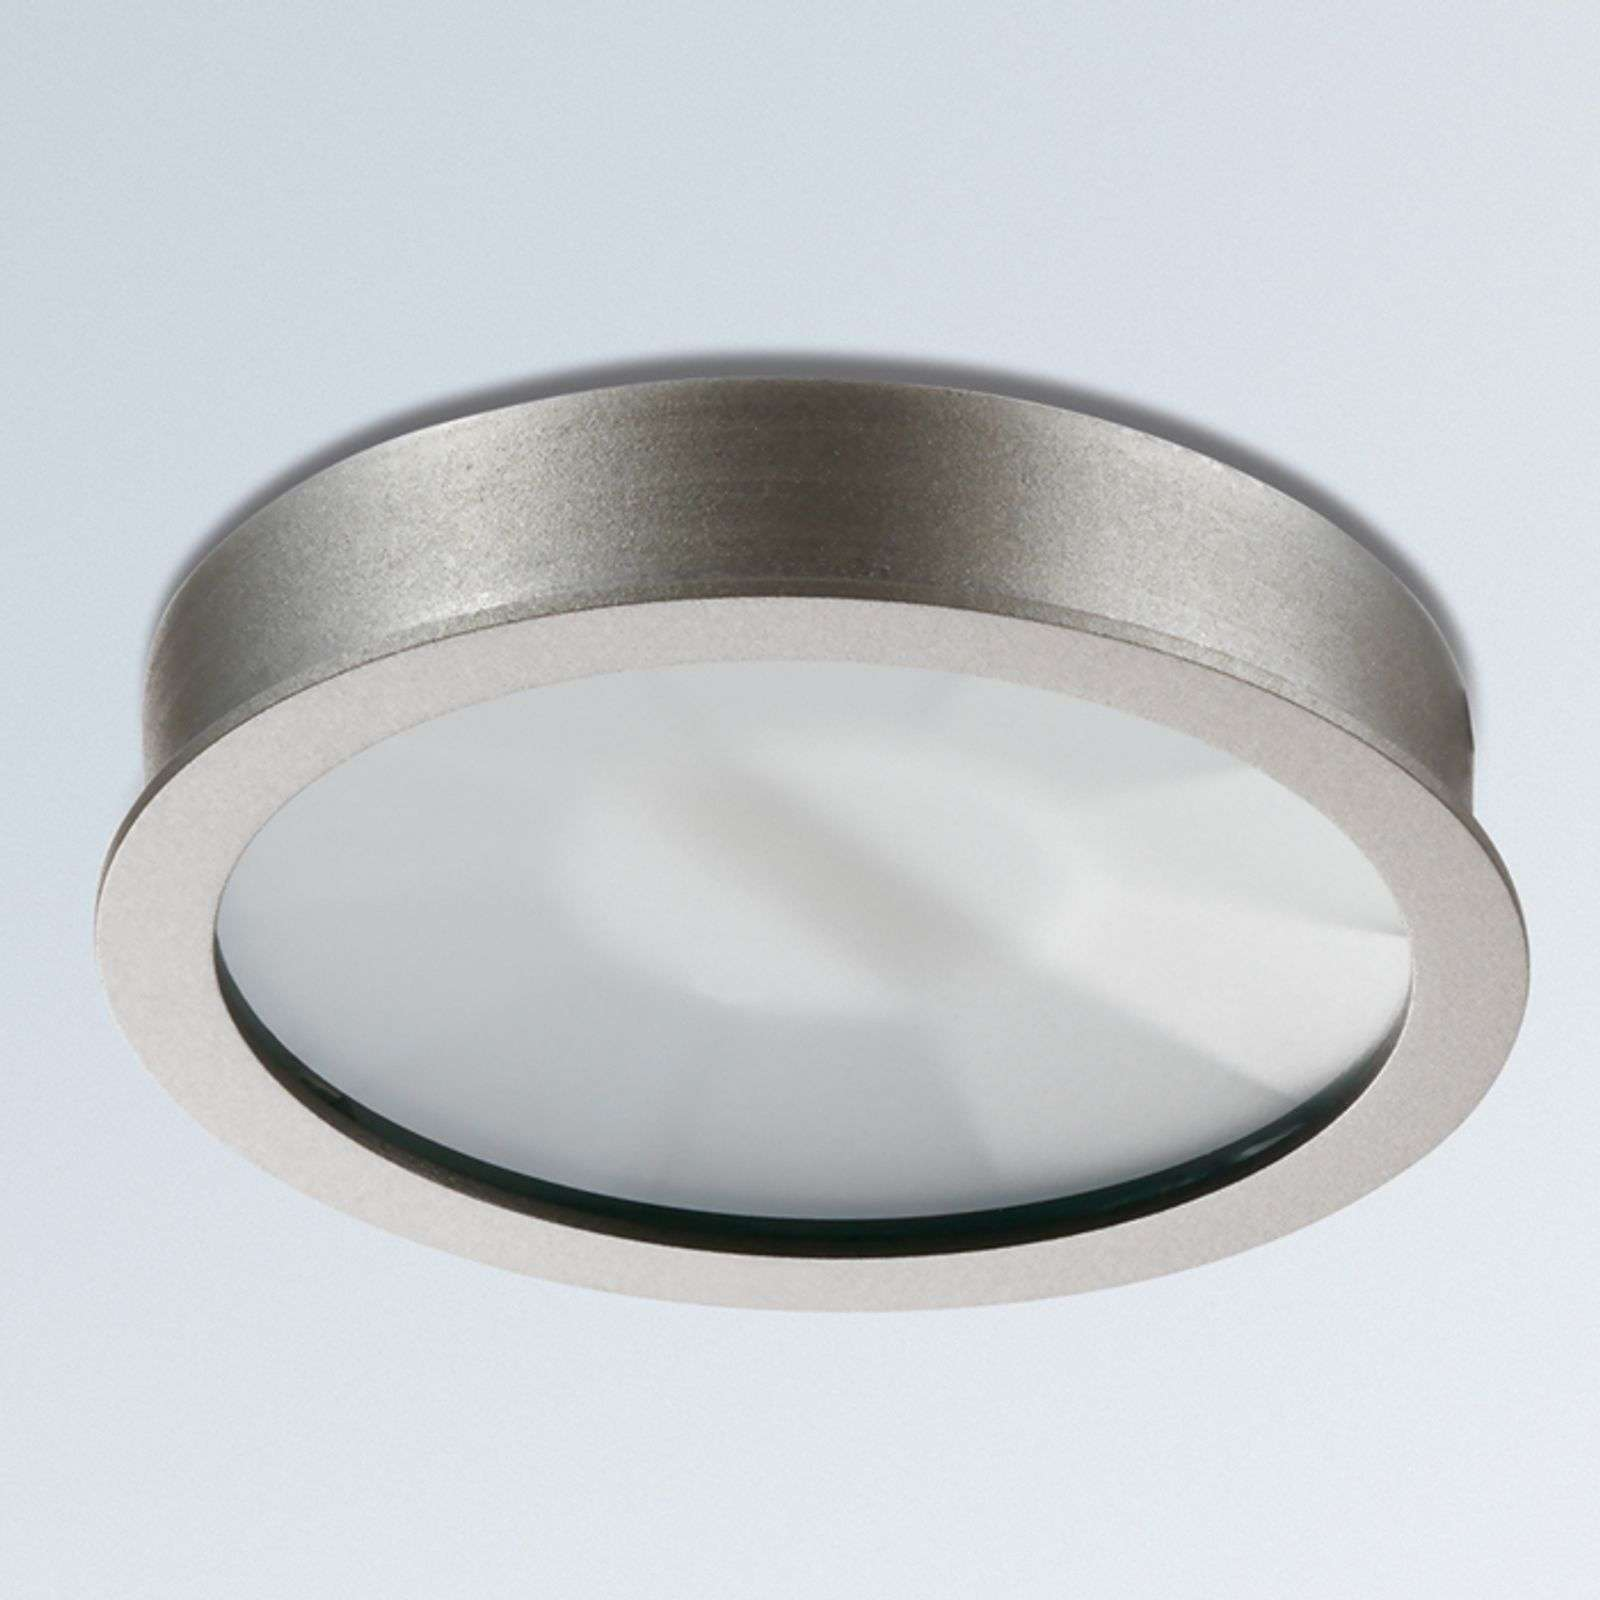 LED-inbouwspot Circle, dimbaar, 4,2W